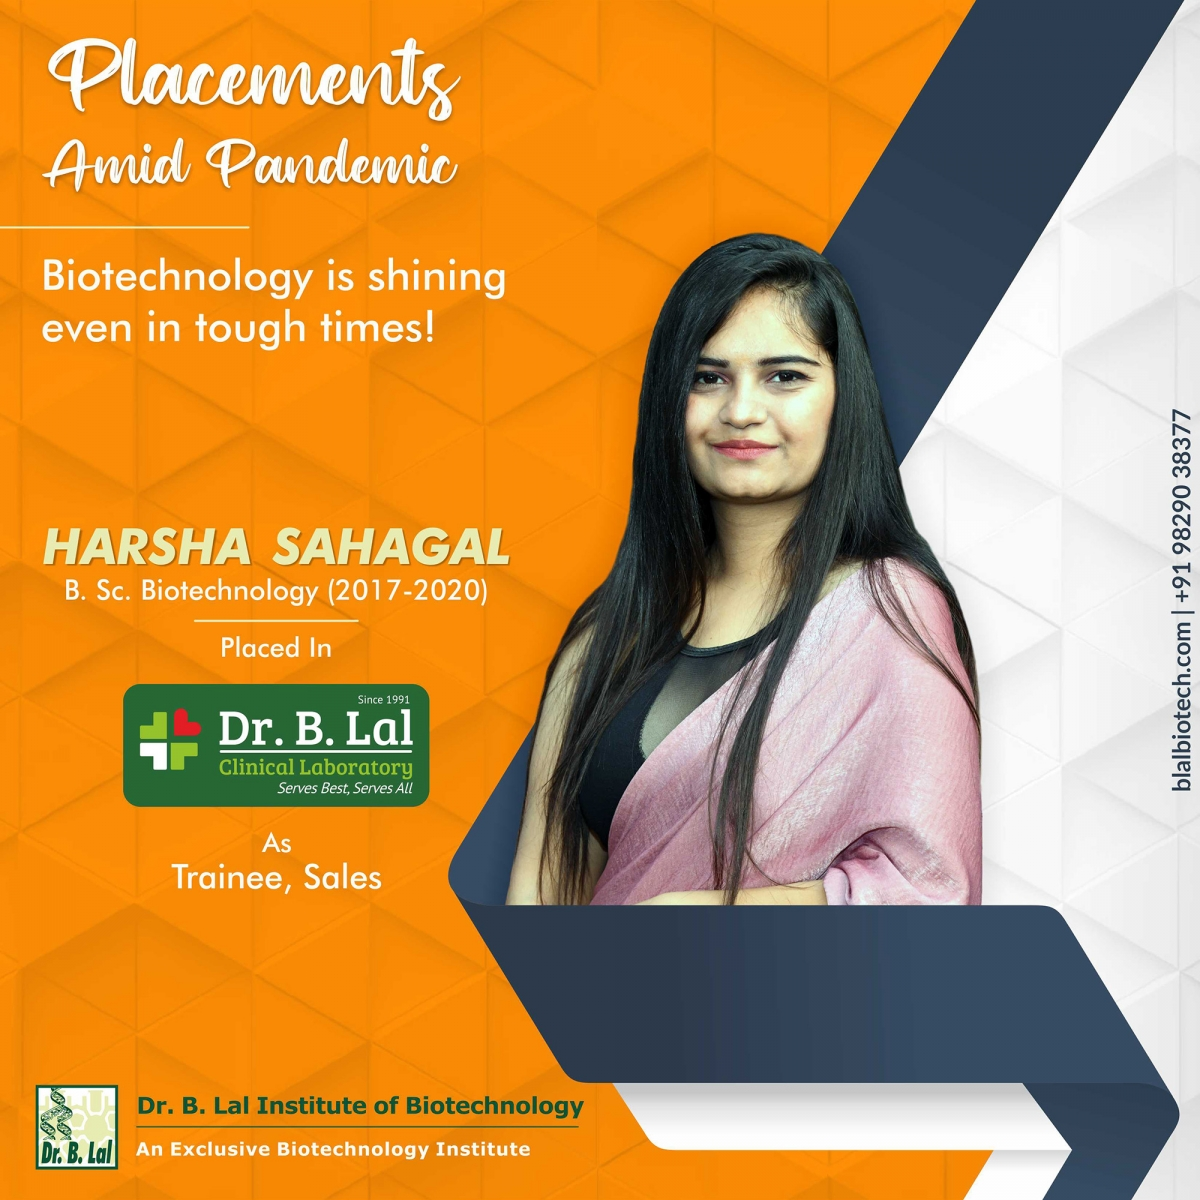 Ms. Harsha Sahagal | Placements Amid Pandemic | Dr. B. Lal Institute of Biotechnology